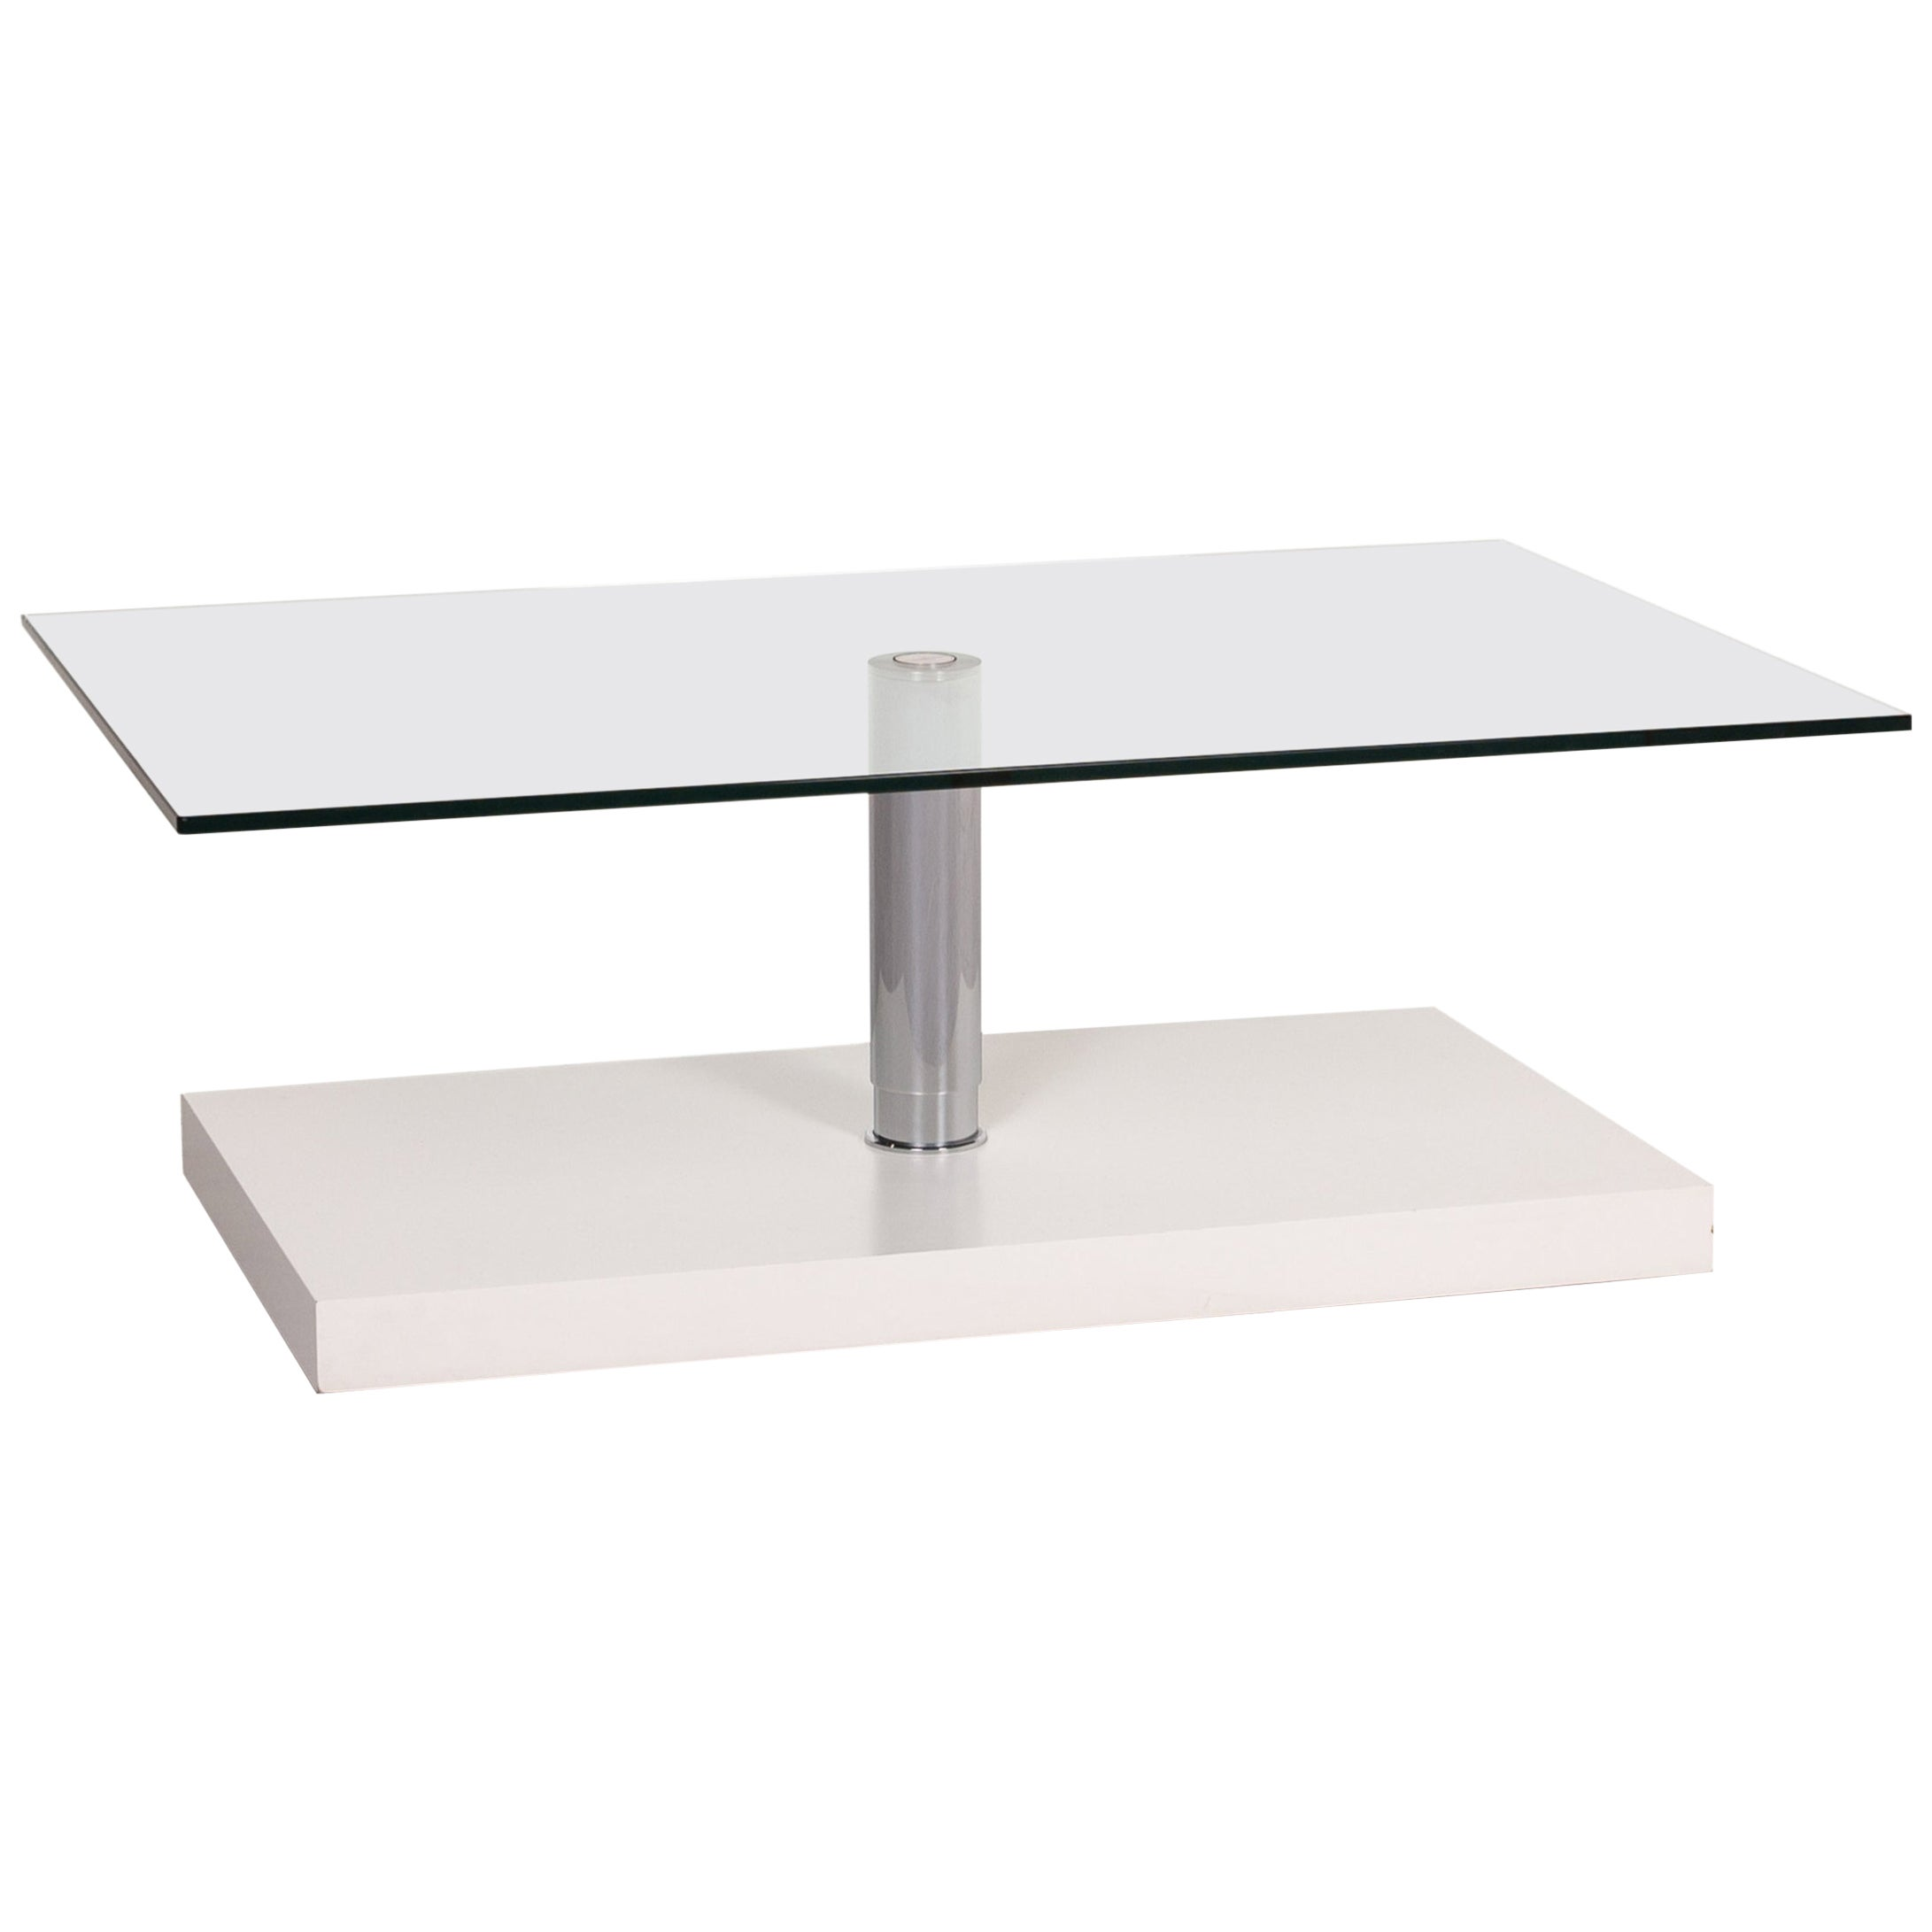 Ronald Schmitt K 436 Glass Coffee Table White Table